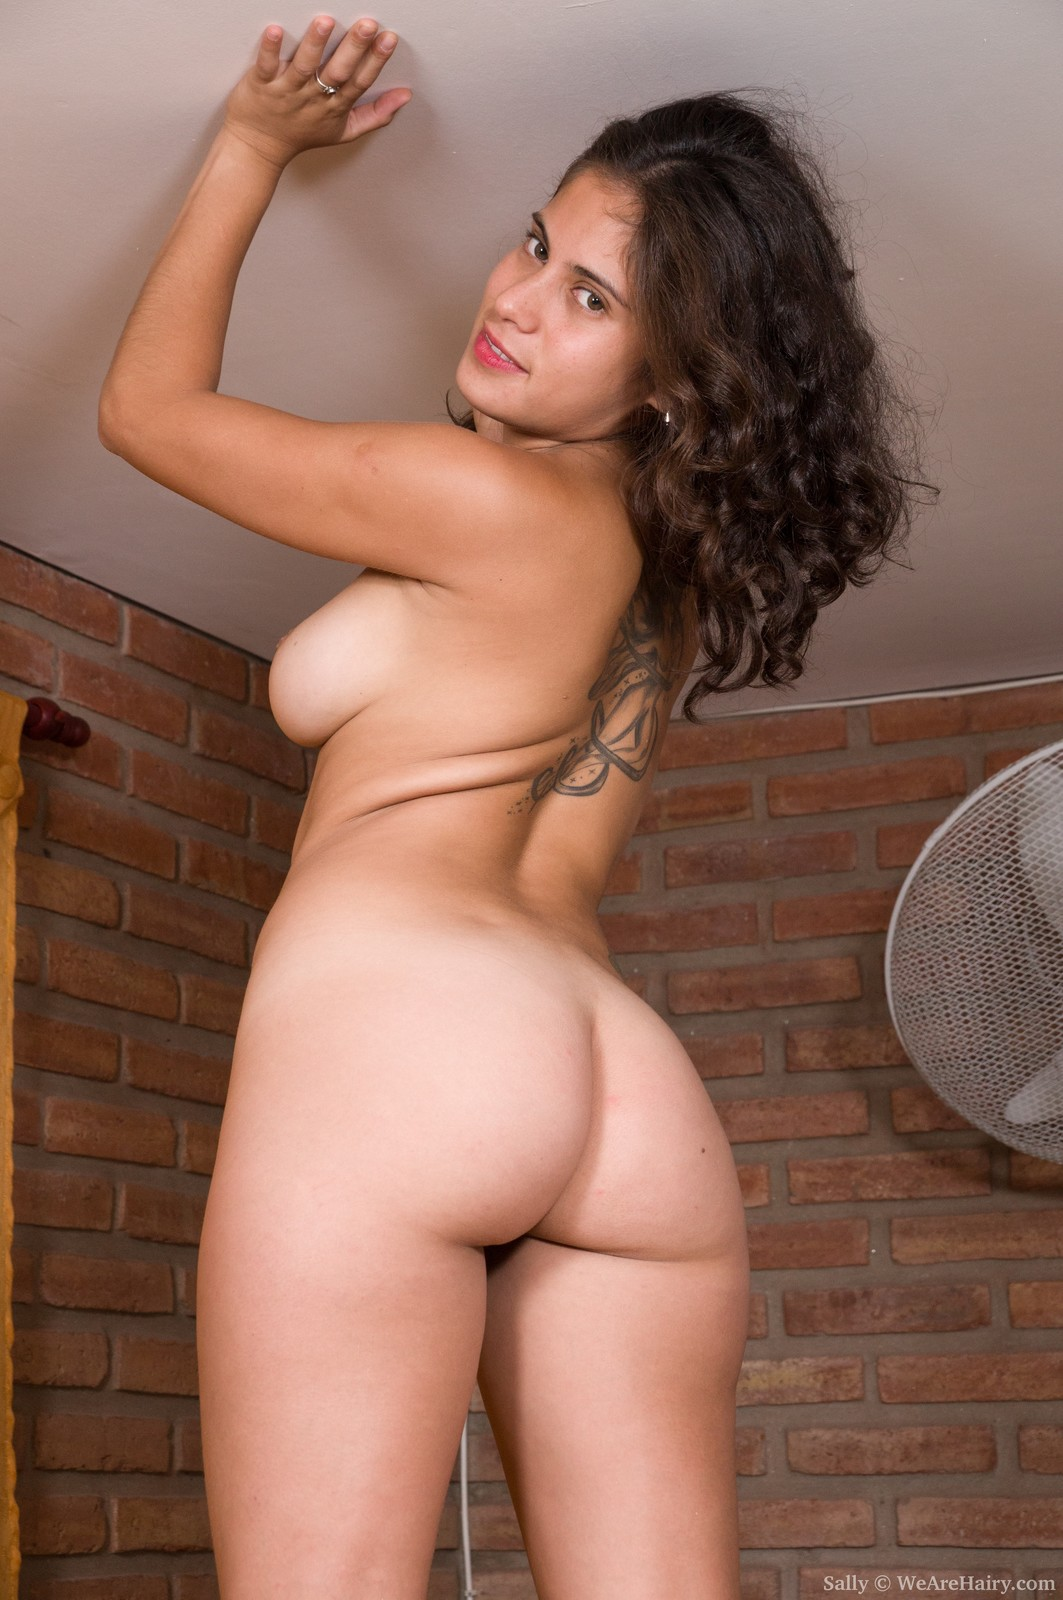 Excellent Hot latina nude slideshow